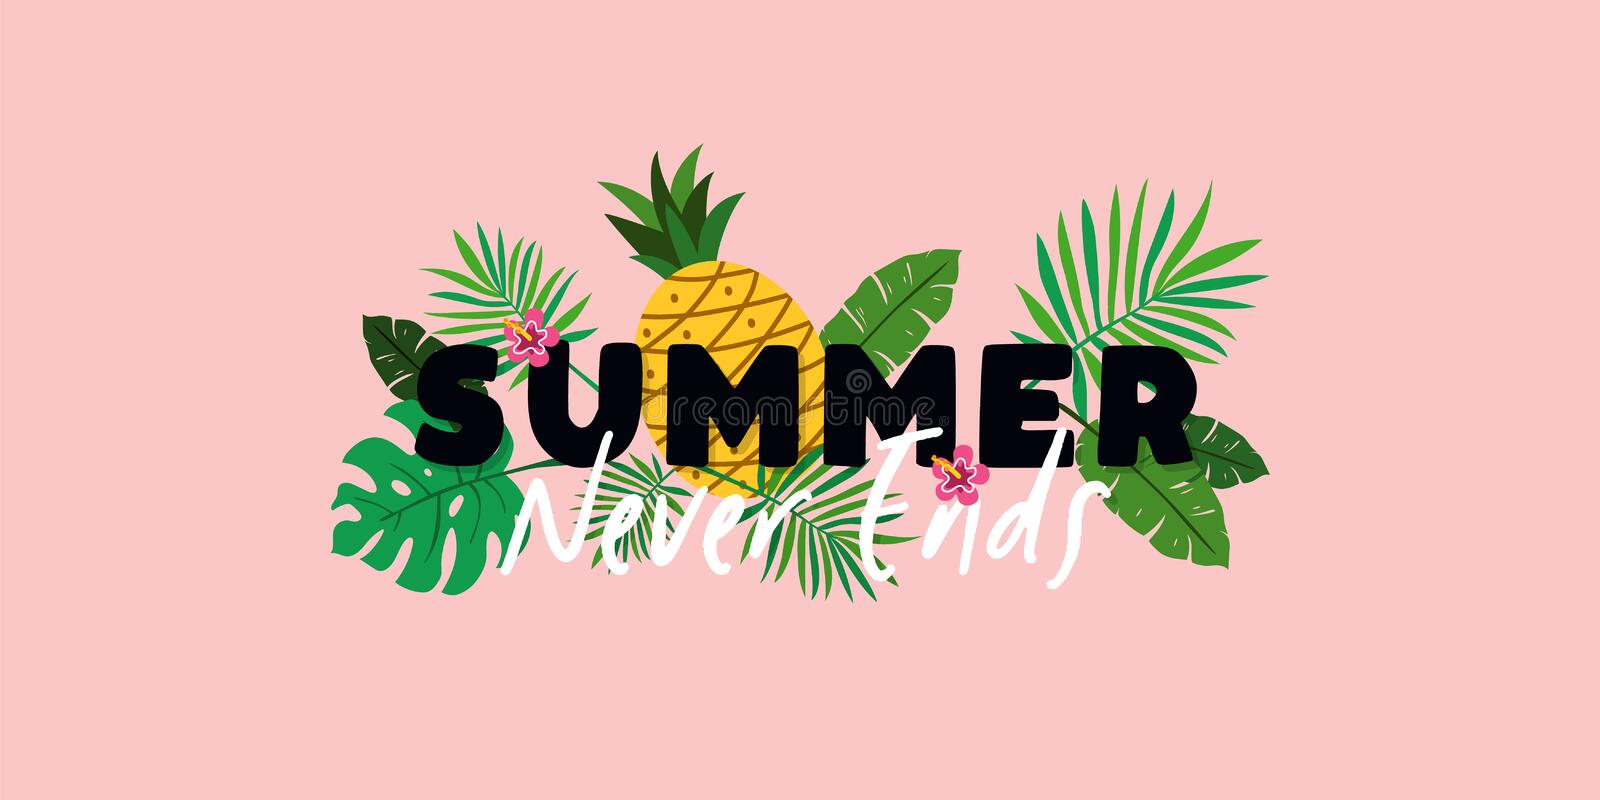 Summer Never Ends typography text banner poster with pineapple fruit and tropical plant leaves background vector illustration vector illustration